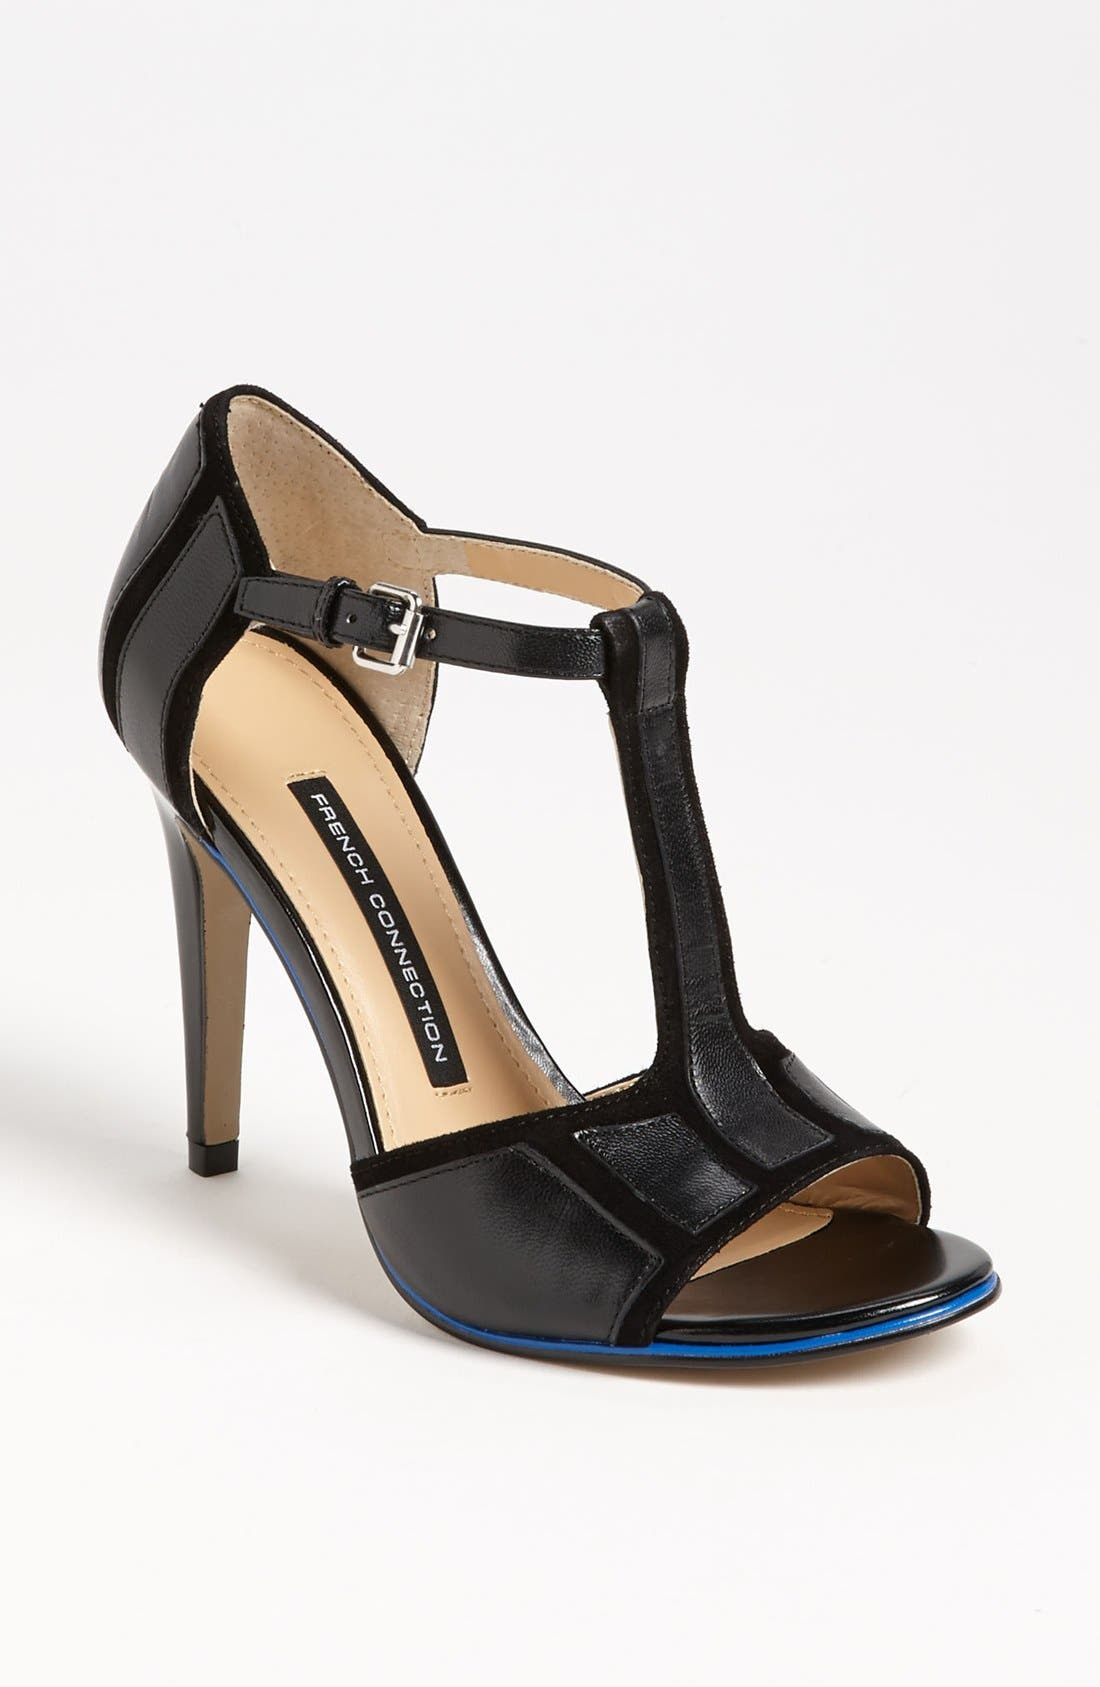 Main Image - French Connection 'Nicky' Sandal